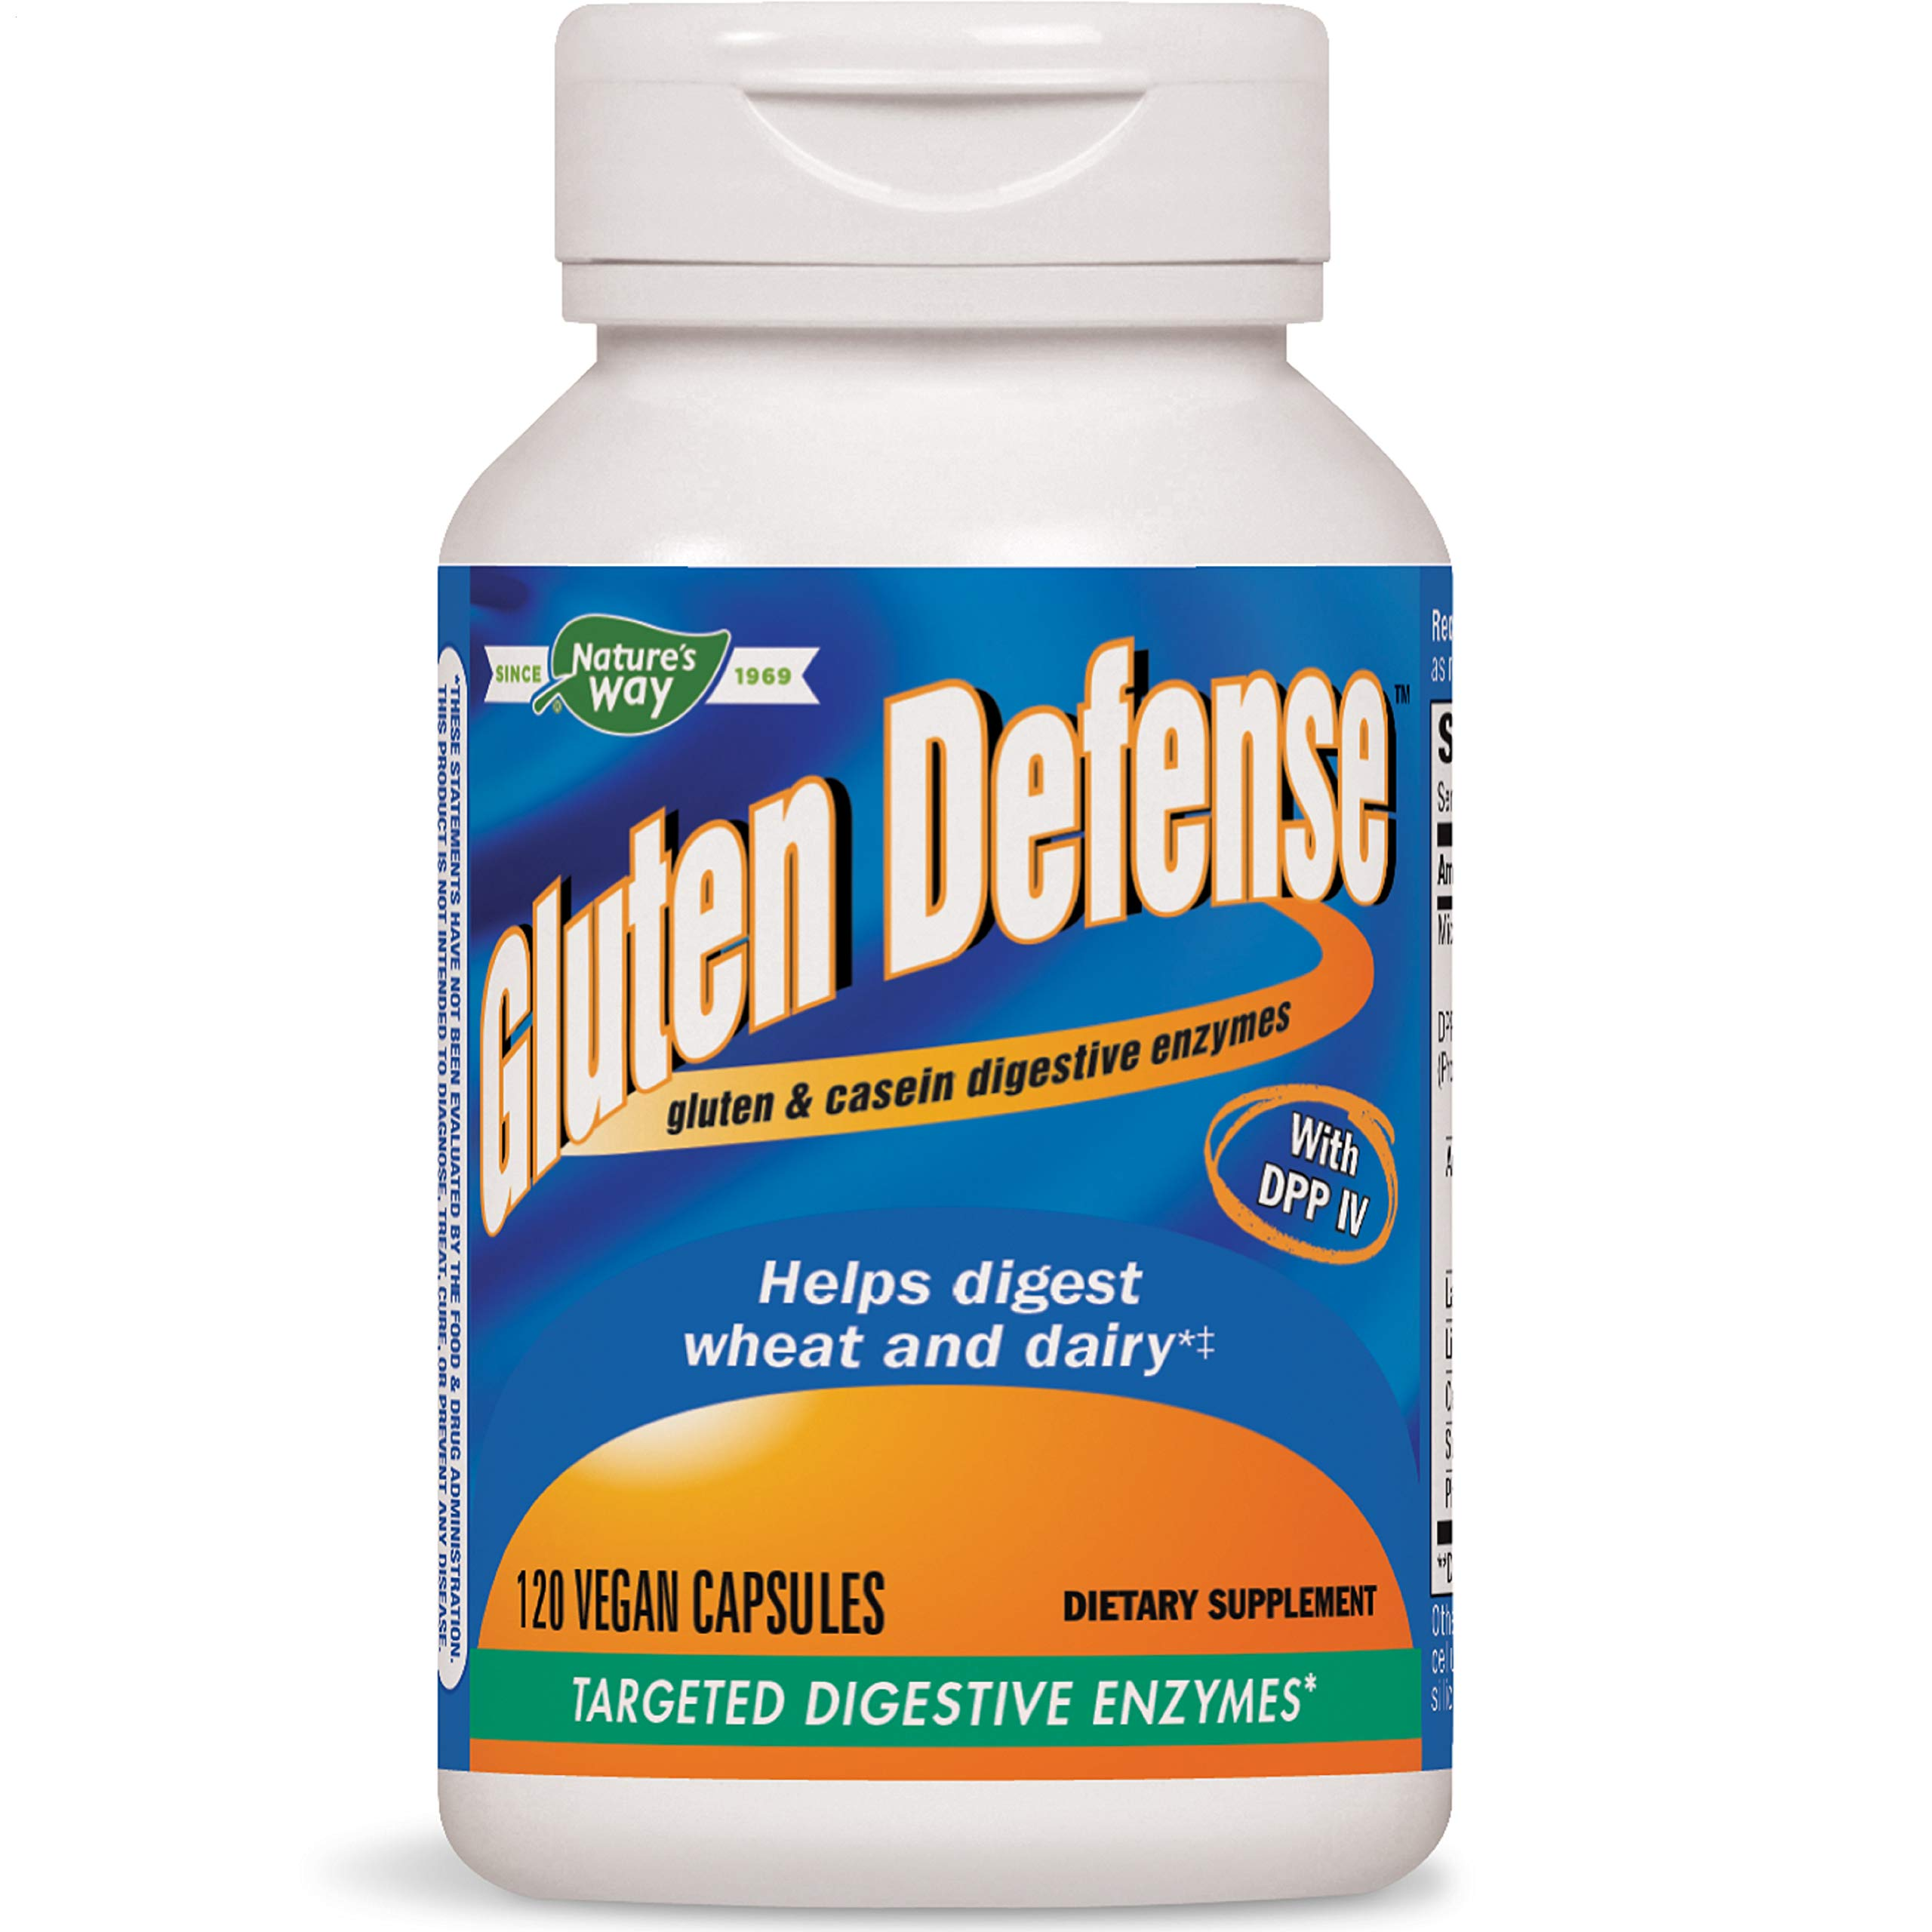 Nature's Way Gluten Defense, Gluten & Casein Targeted Digestive Enyzmes, 120 VCaps (Packaging May Vary) by Nature's Way